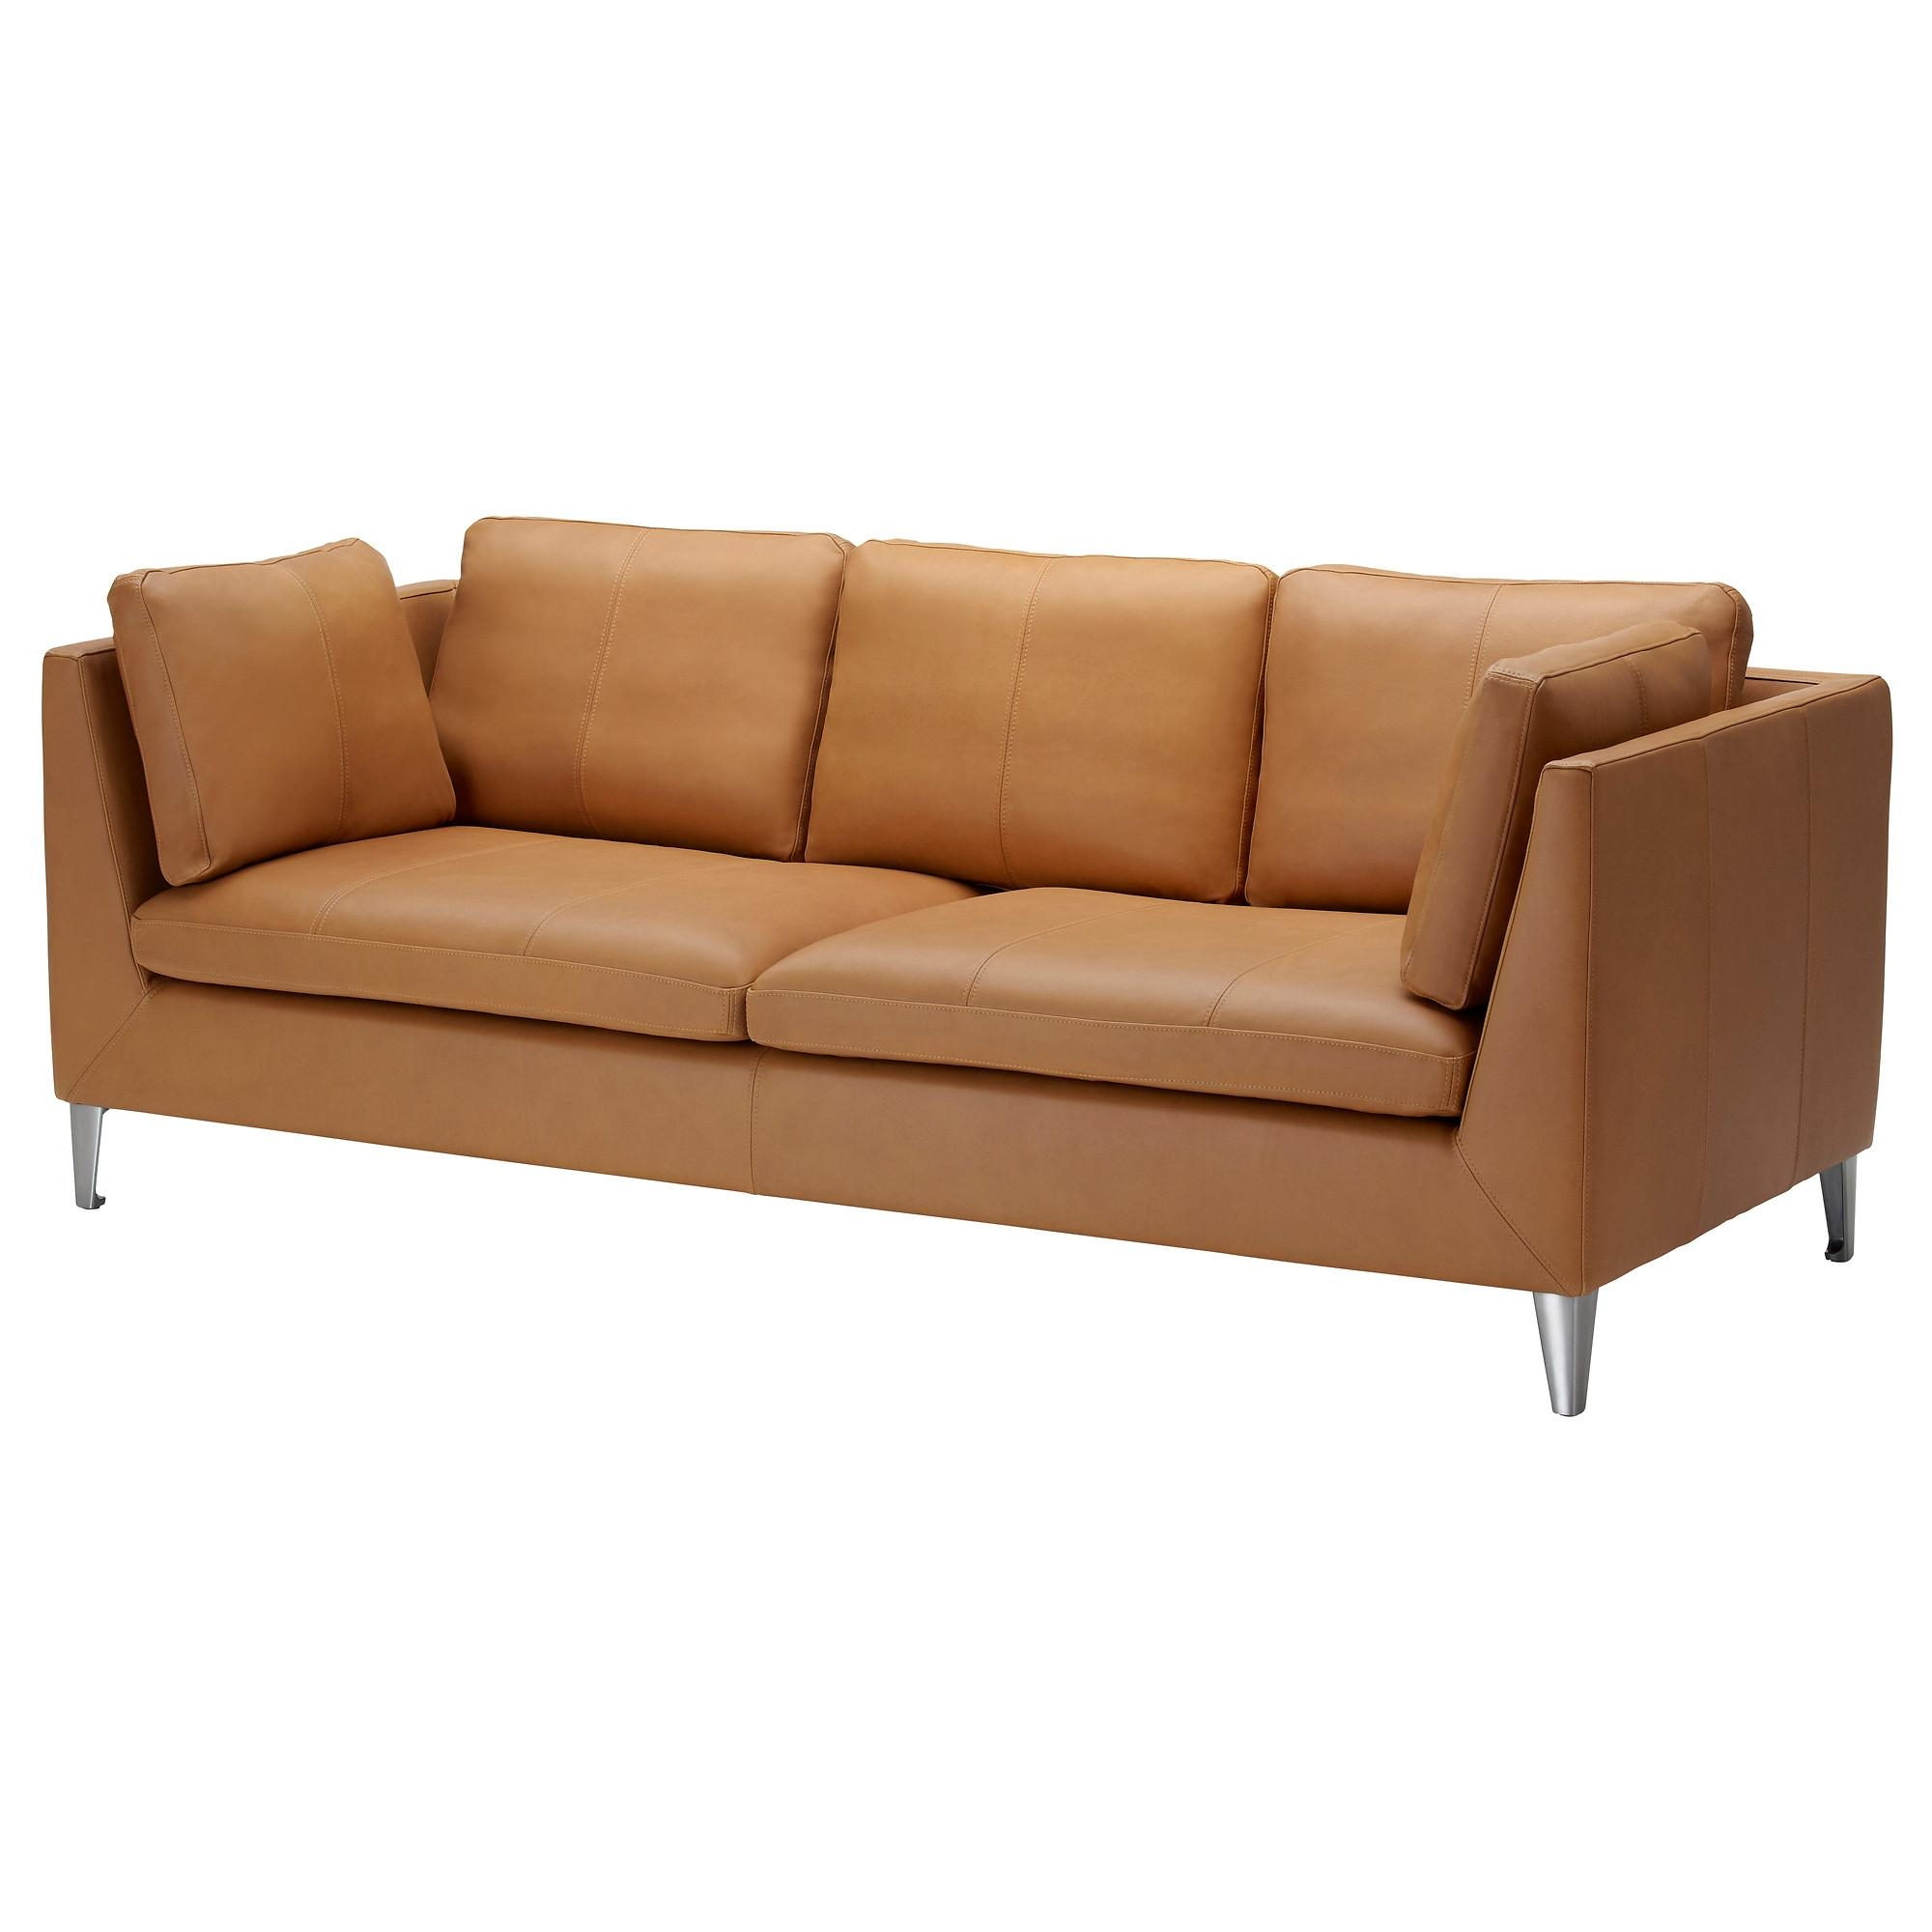 Leather & Faux Leather Couches, Chairs & Ottomans – Ikea Intended For Sofa Chairs Ikea (Image 13 of 20)